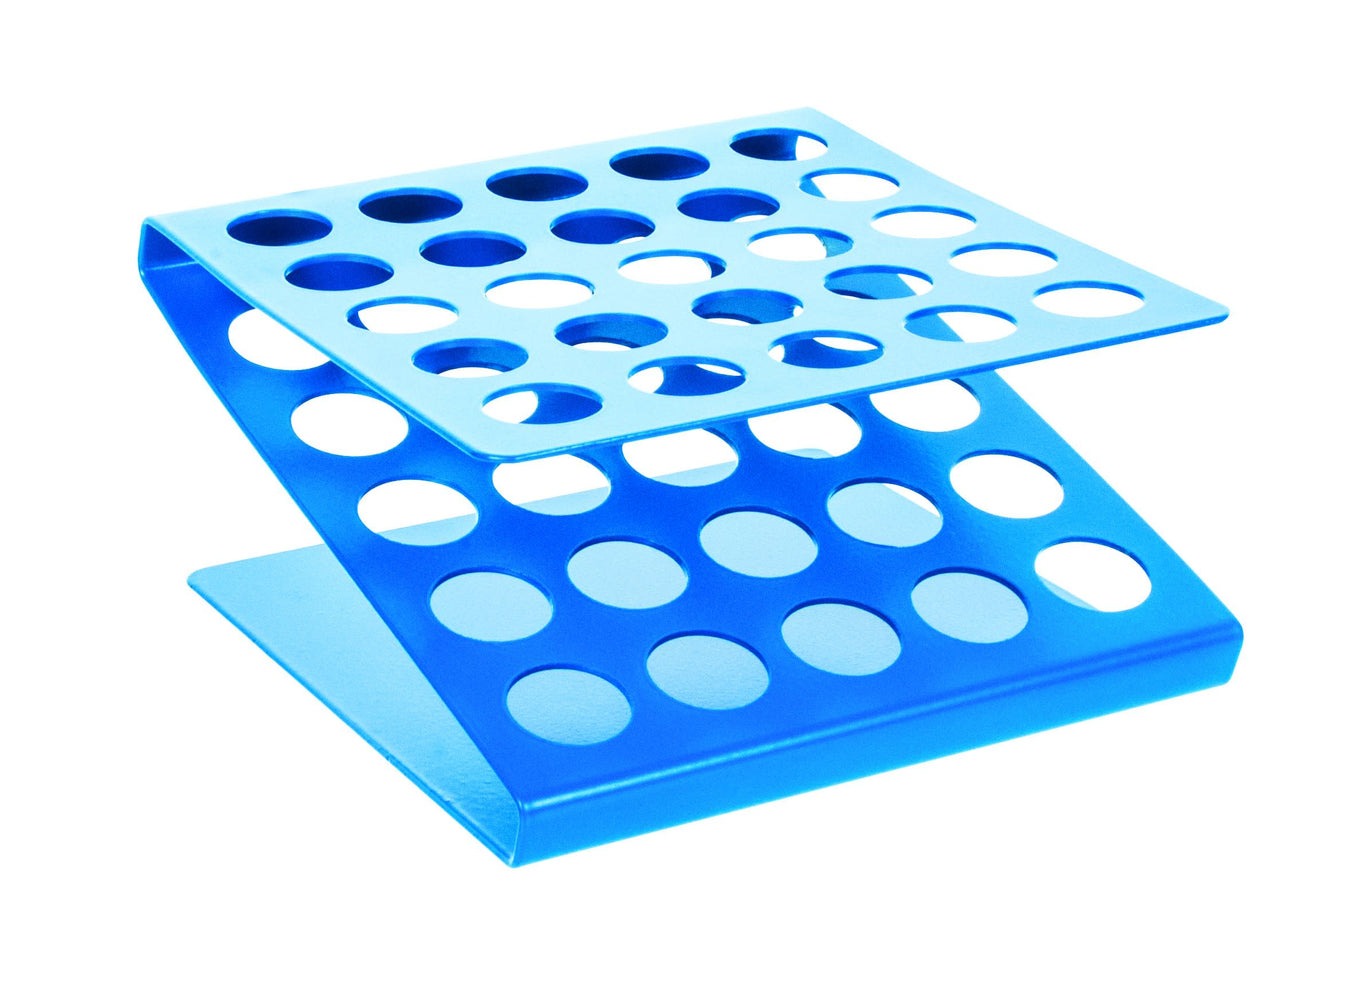 Test Tube Stand - 'Z' Shape, 17 mm x 25 Holes